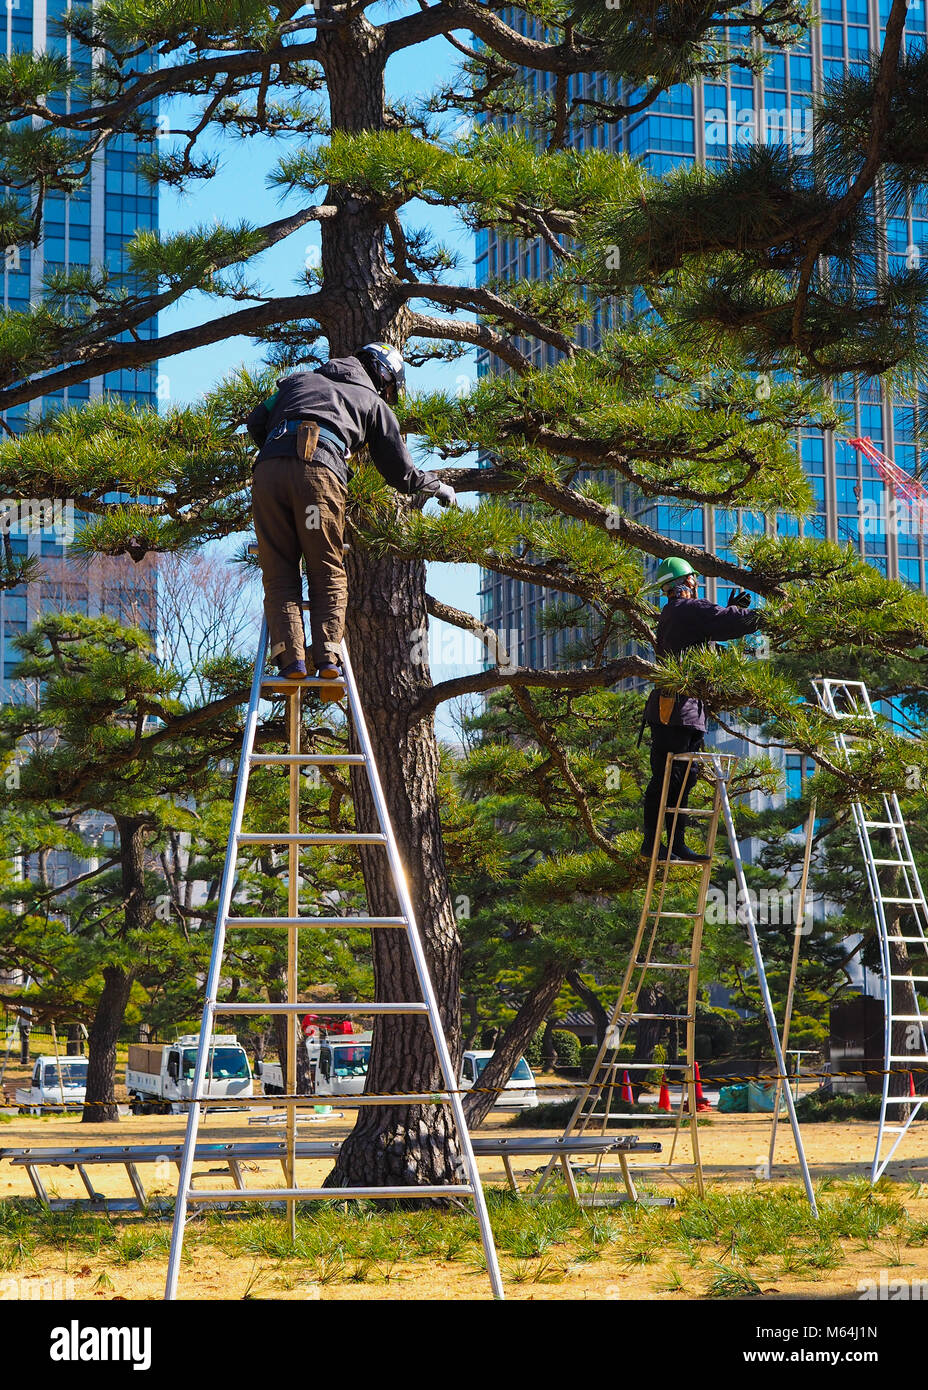 A pair of arborists, tree surgeons, at work in Tokyo Japan. A tall bonsai style Japanese Black Pine, Pinus thunbergii, - Stock Image